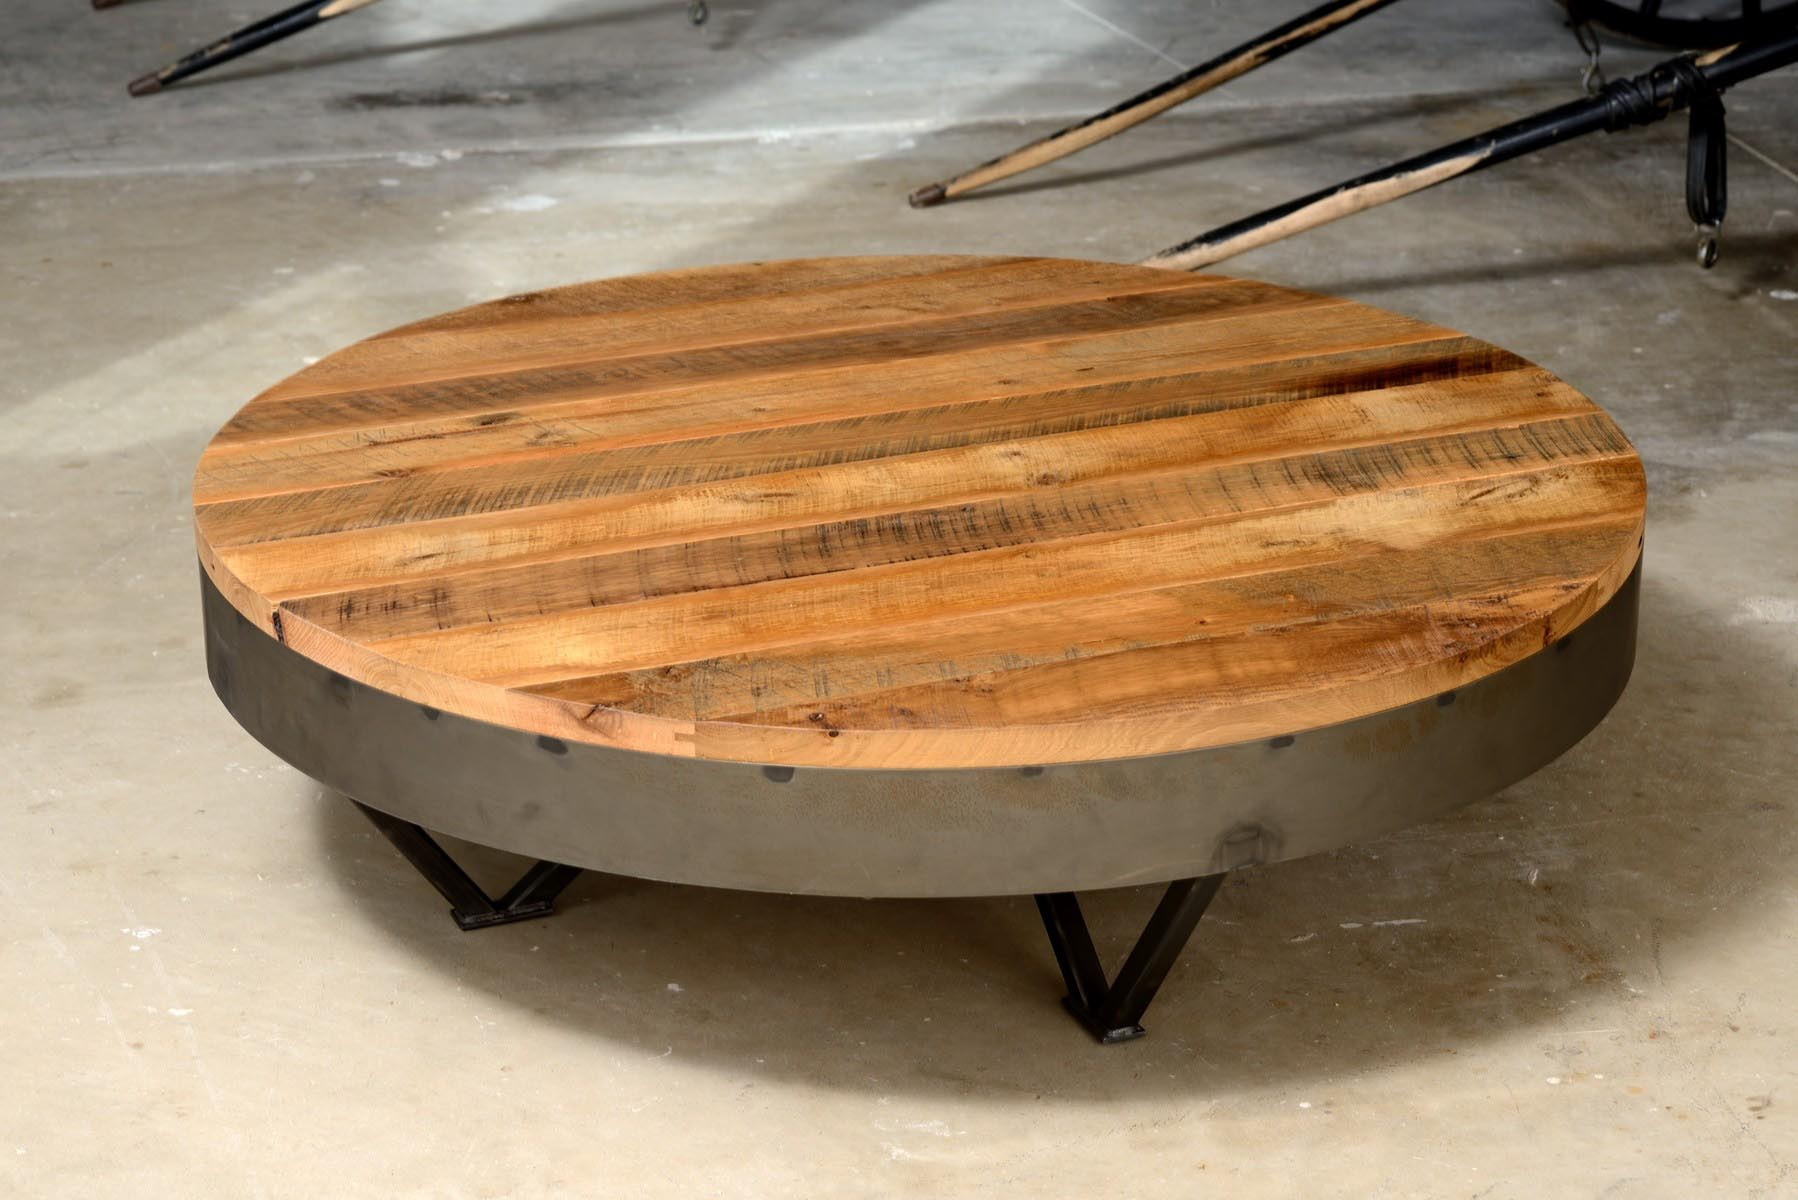 Low Round Coffee Table Coffee Table Design Ideas: what to put on a round coffee table